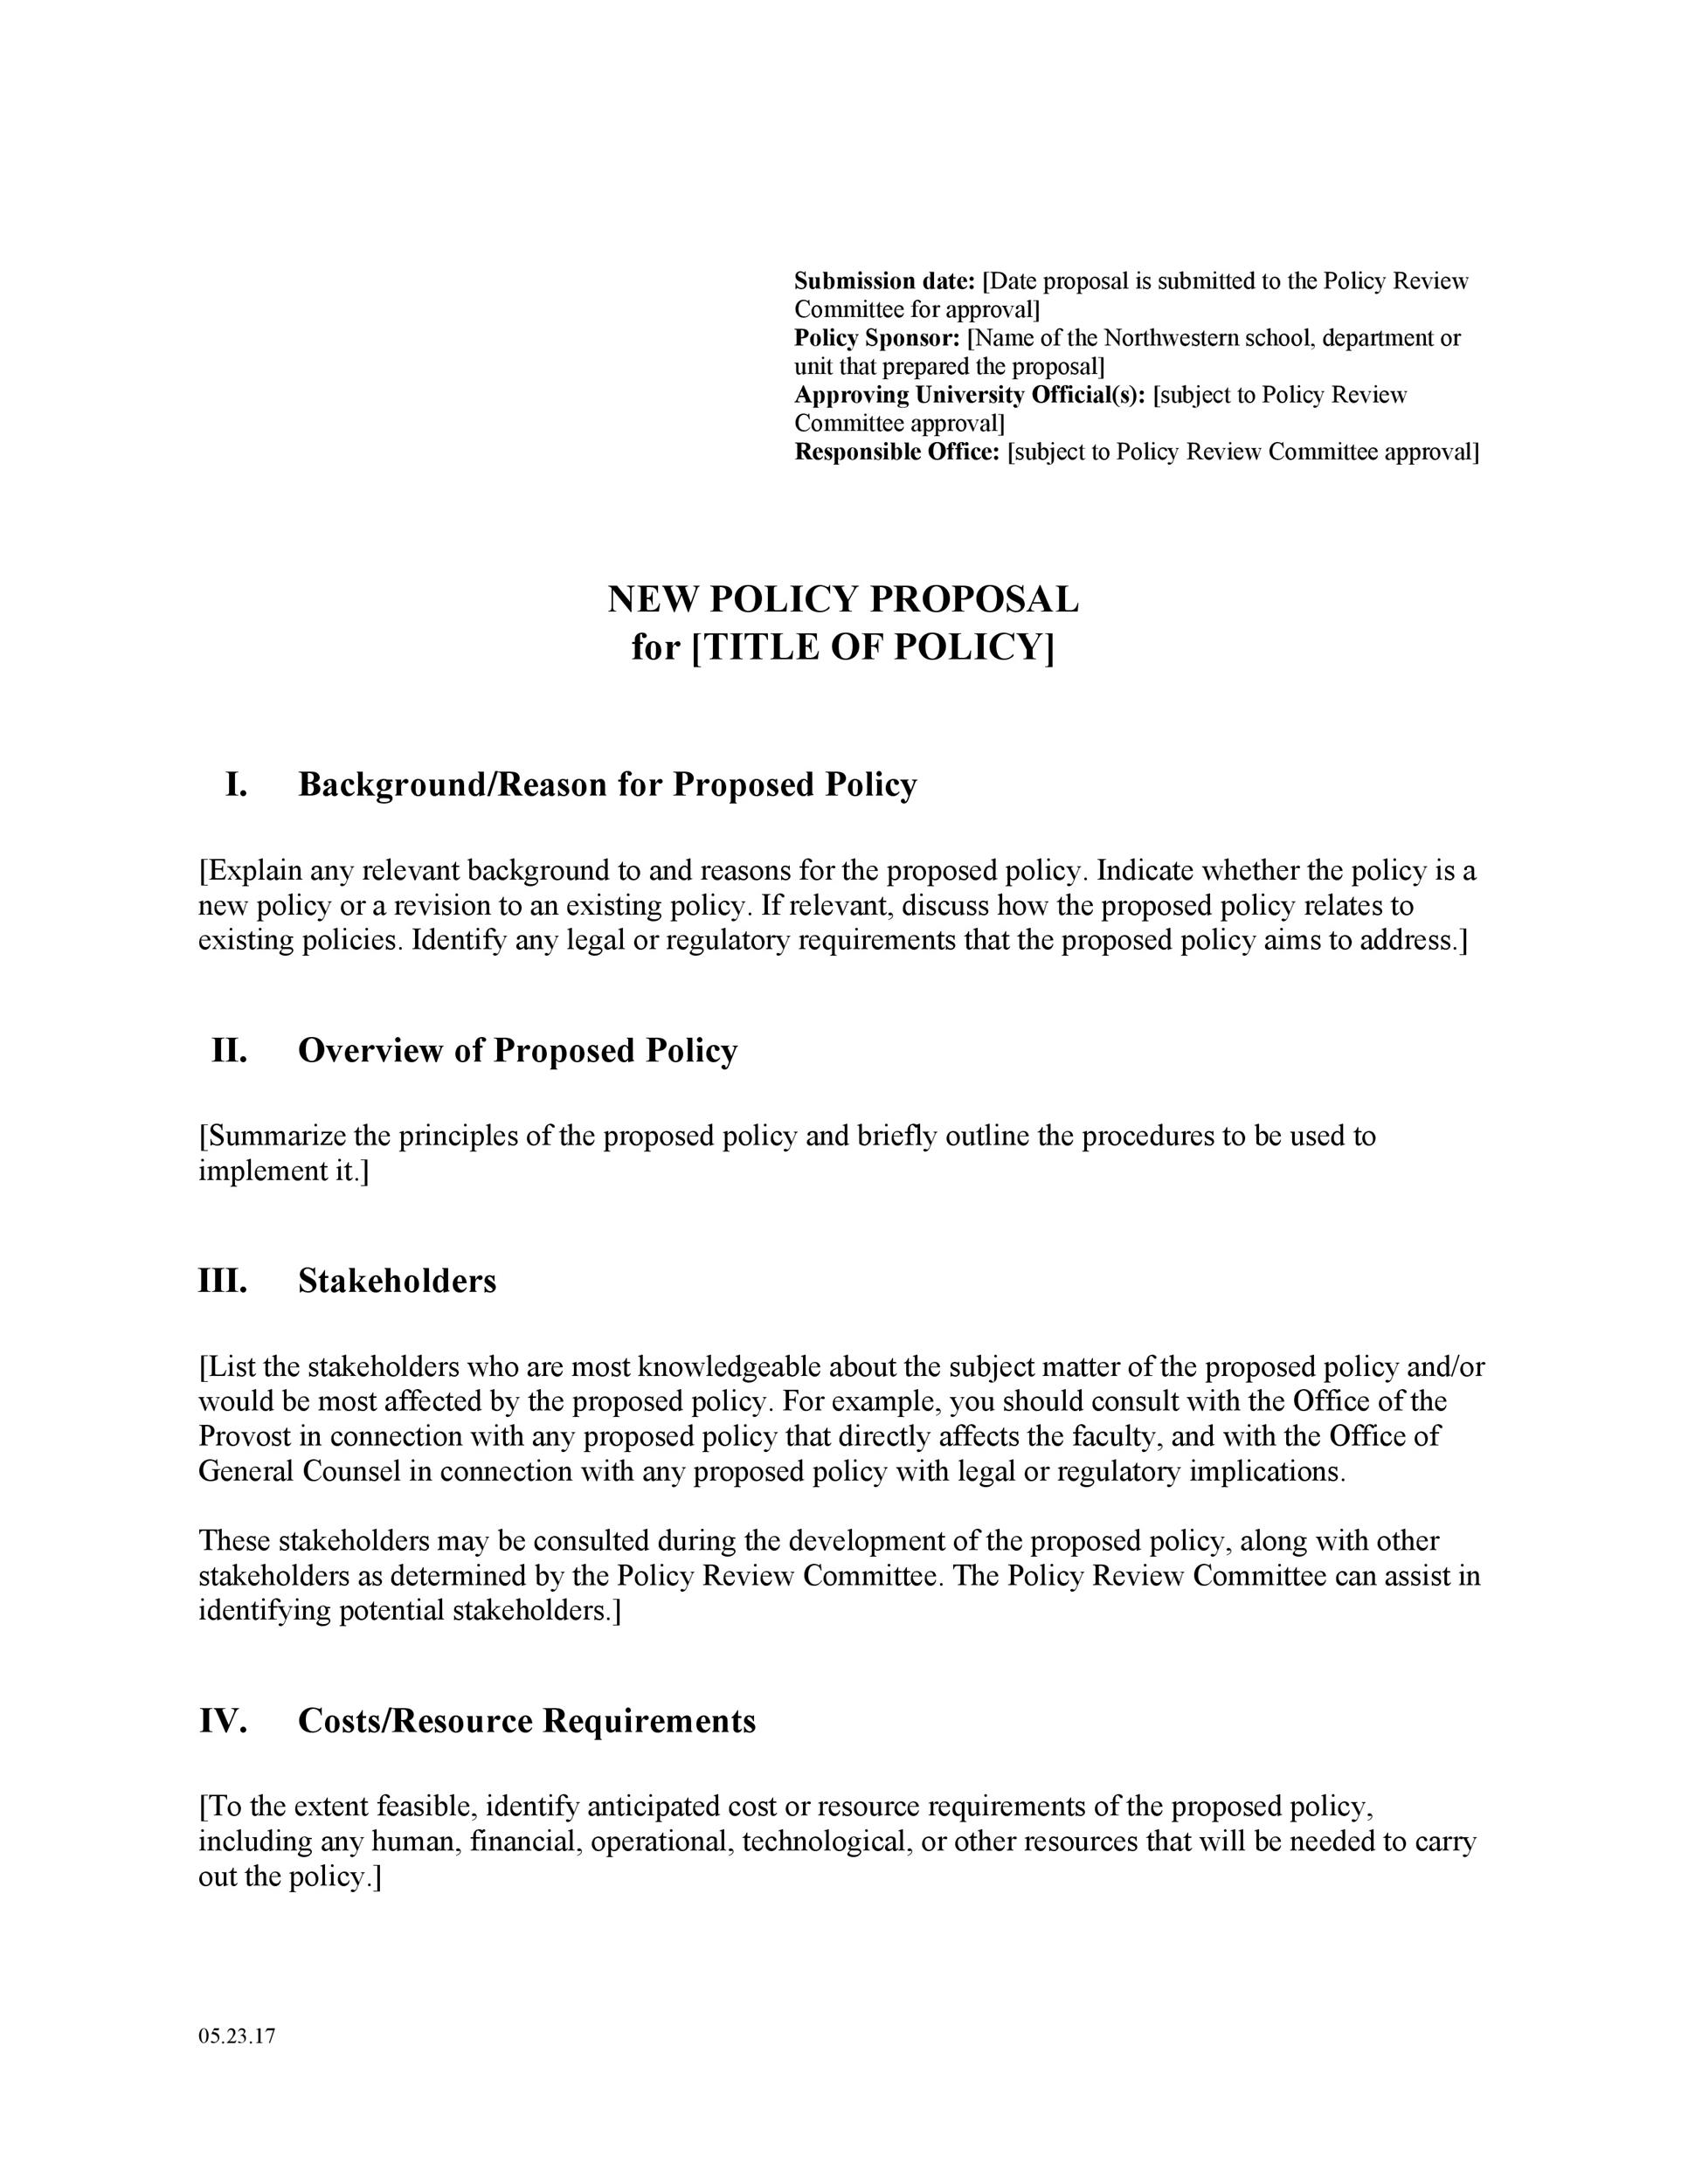 30 Professional Policy Proposal Templates Examples ᐅ Templatelab